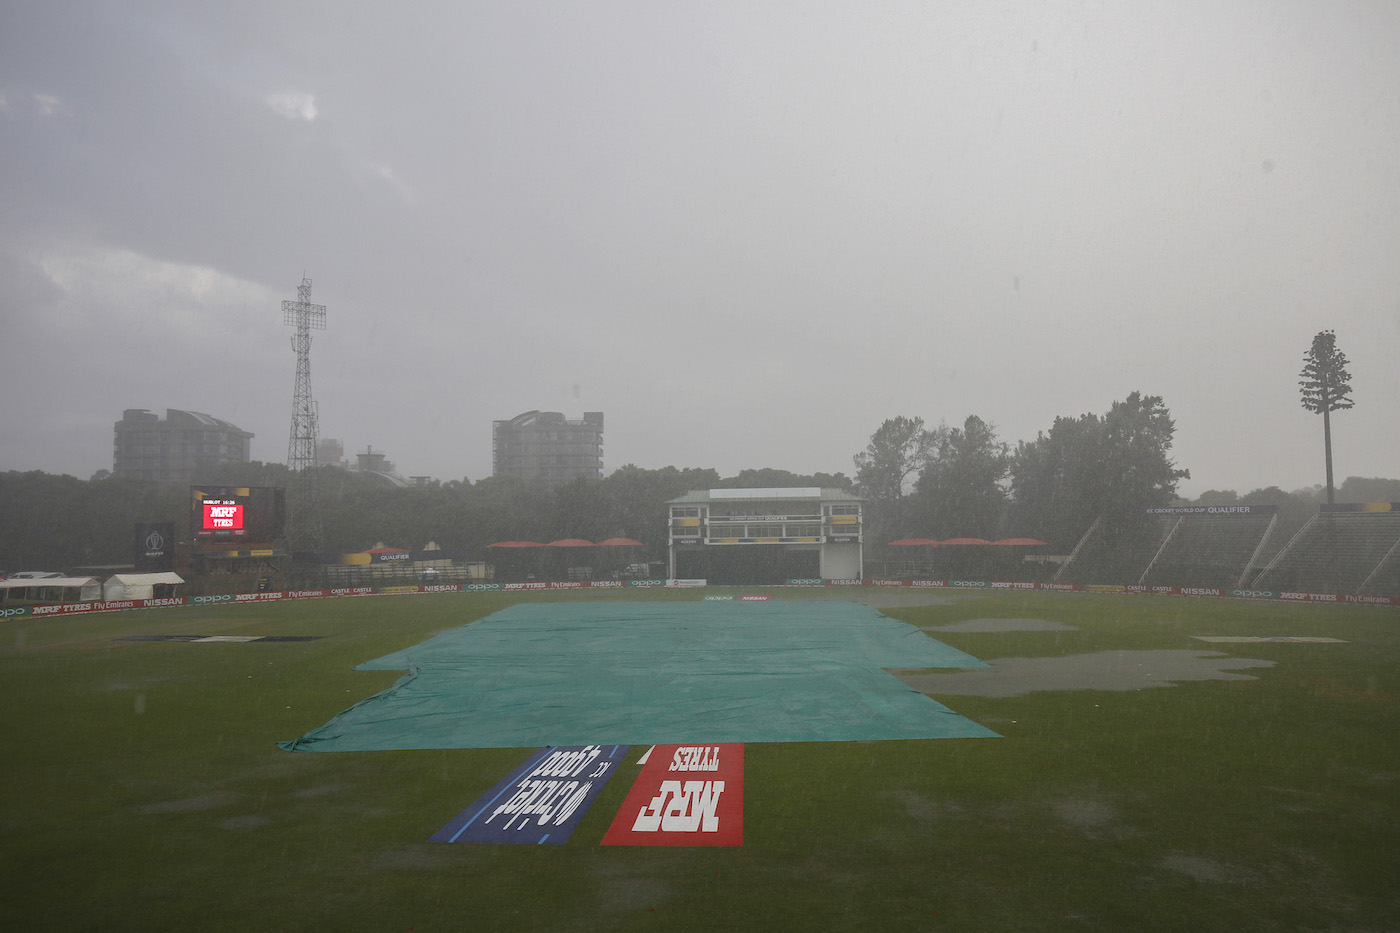 The rain came down when Scotland were 125 for 5, in the 36th over, chasing 199